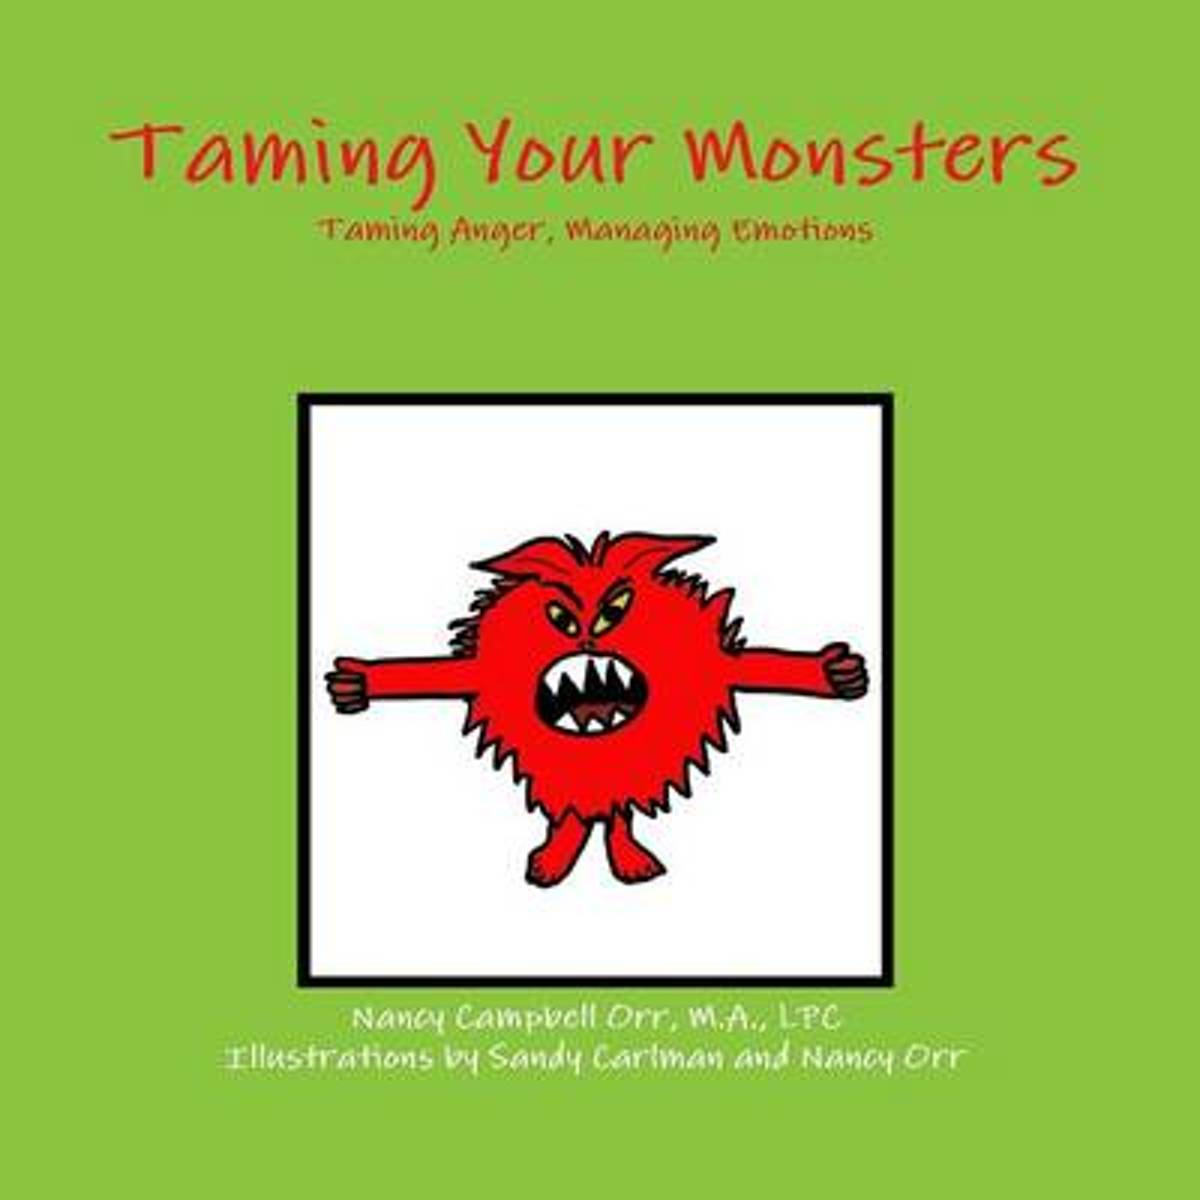 Taming Your Monsters